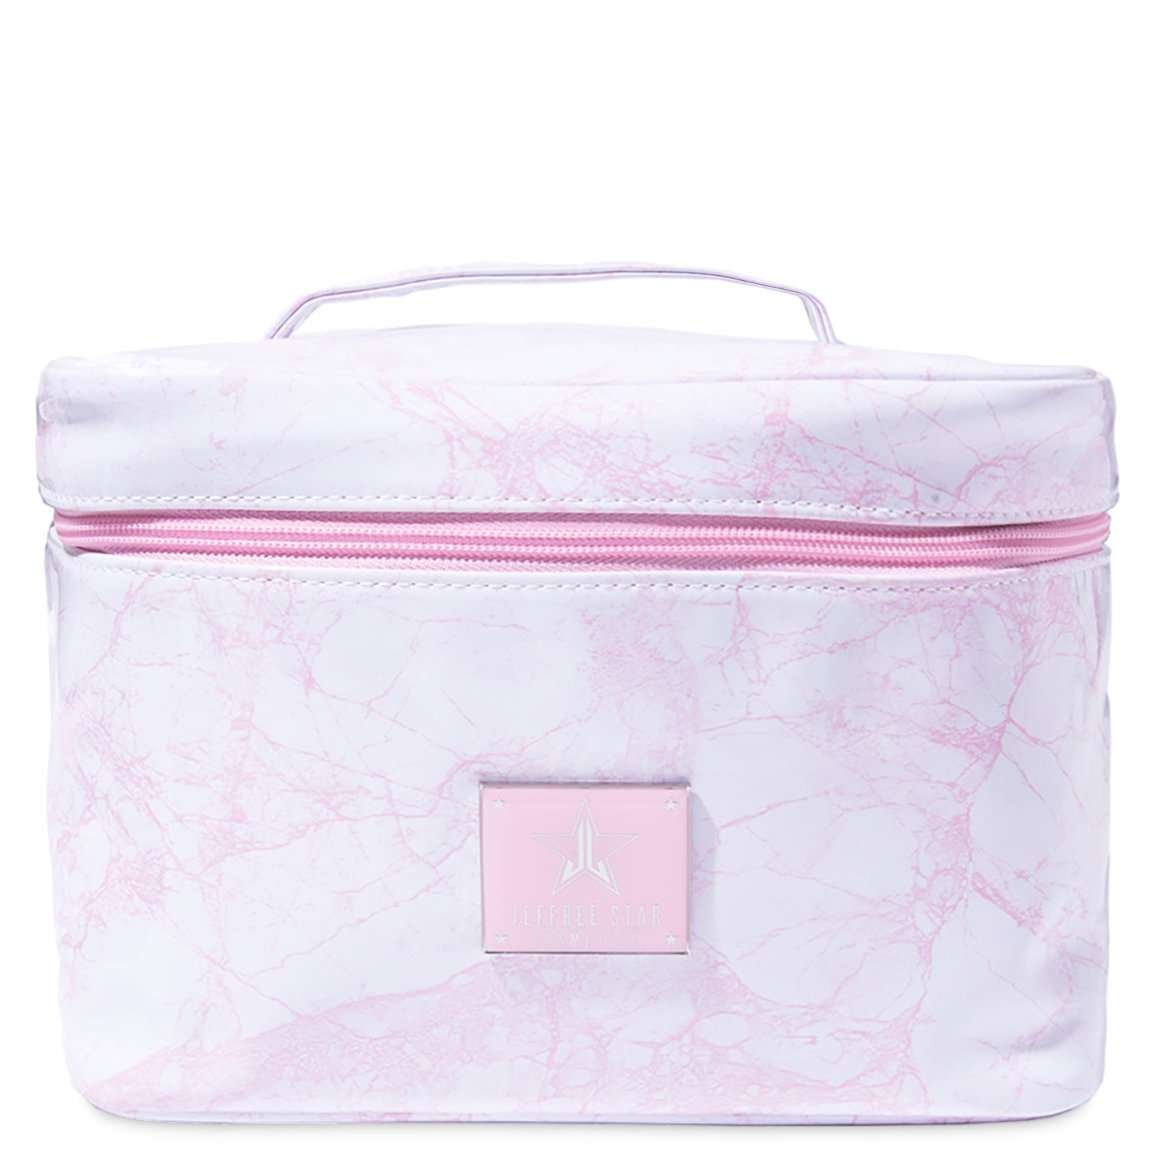 Jeffree Star Cosmetics Travel Makeup Bag White Marble alternative view 1 - product swatch.